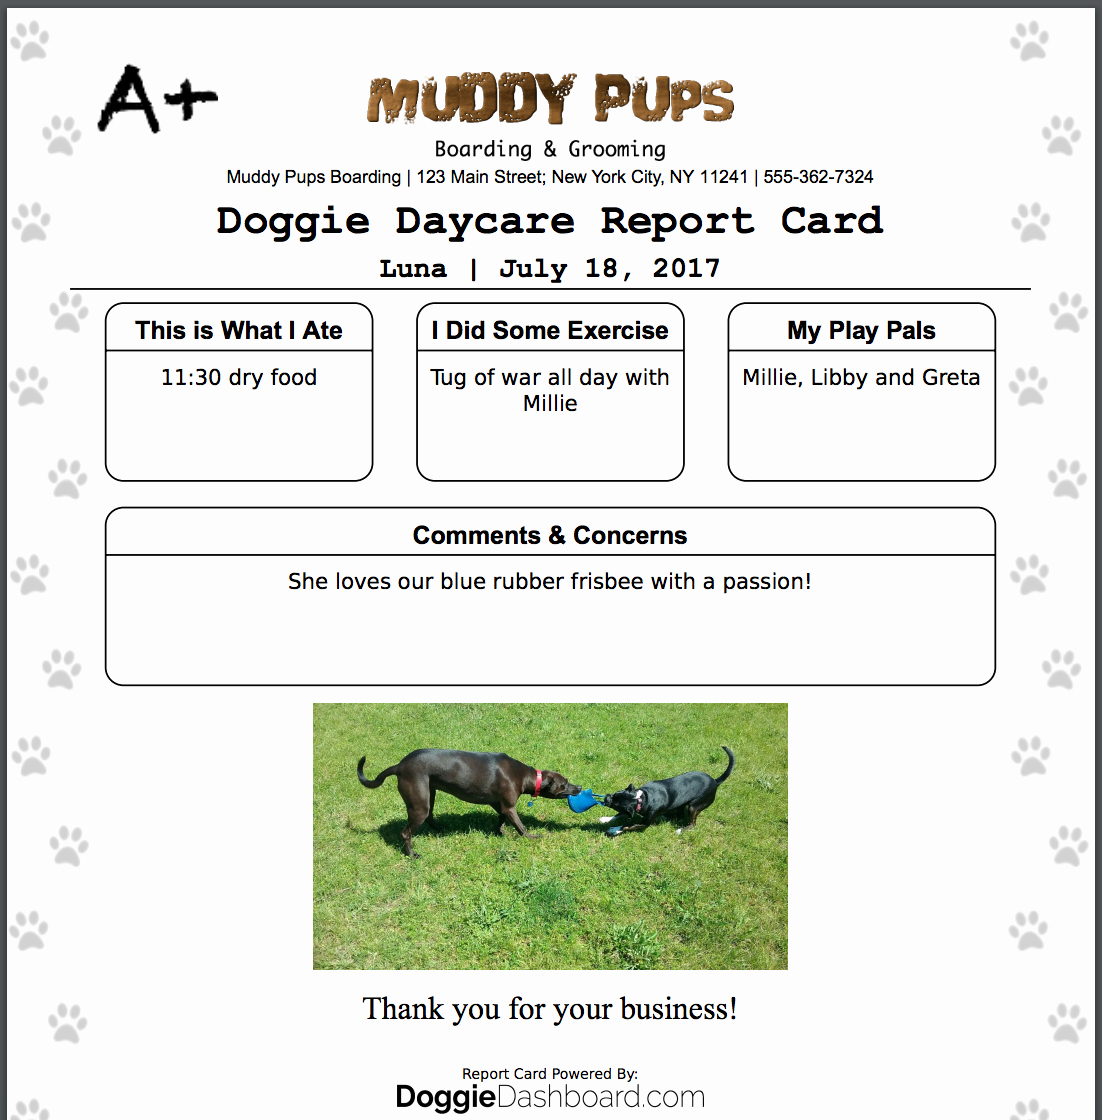 Dog Daycare Report Card Luxury Doggiedashboard